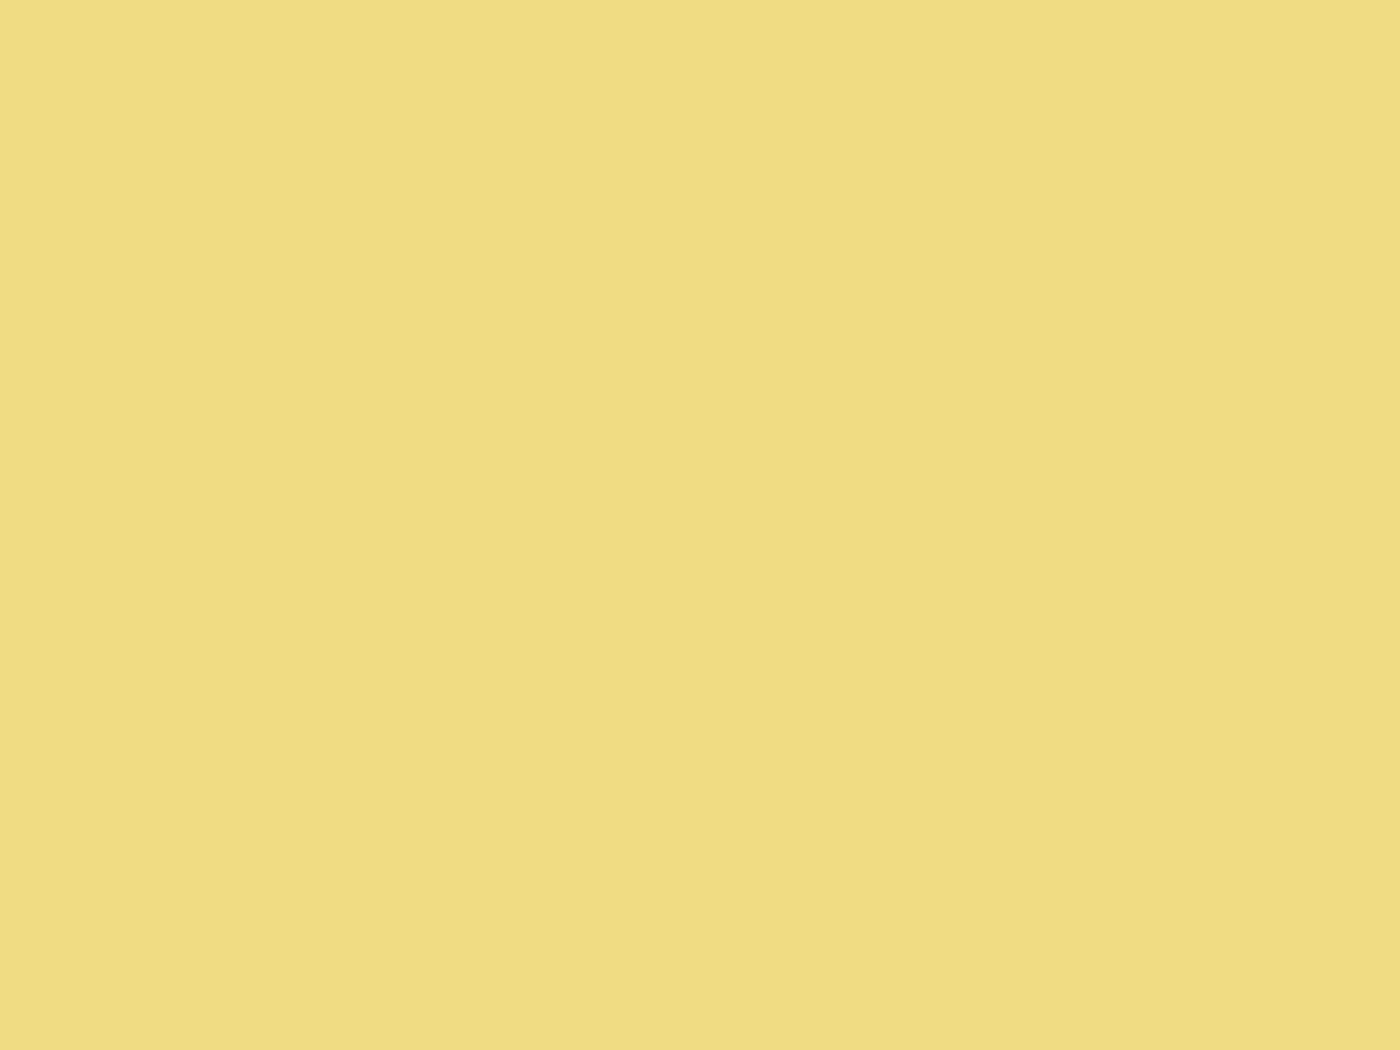 1400x1050 Buff Solid Color Background